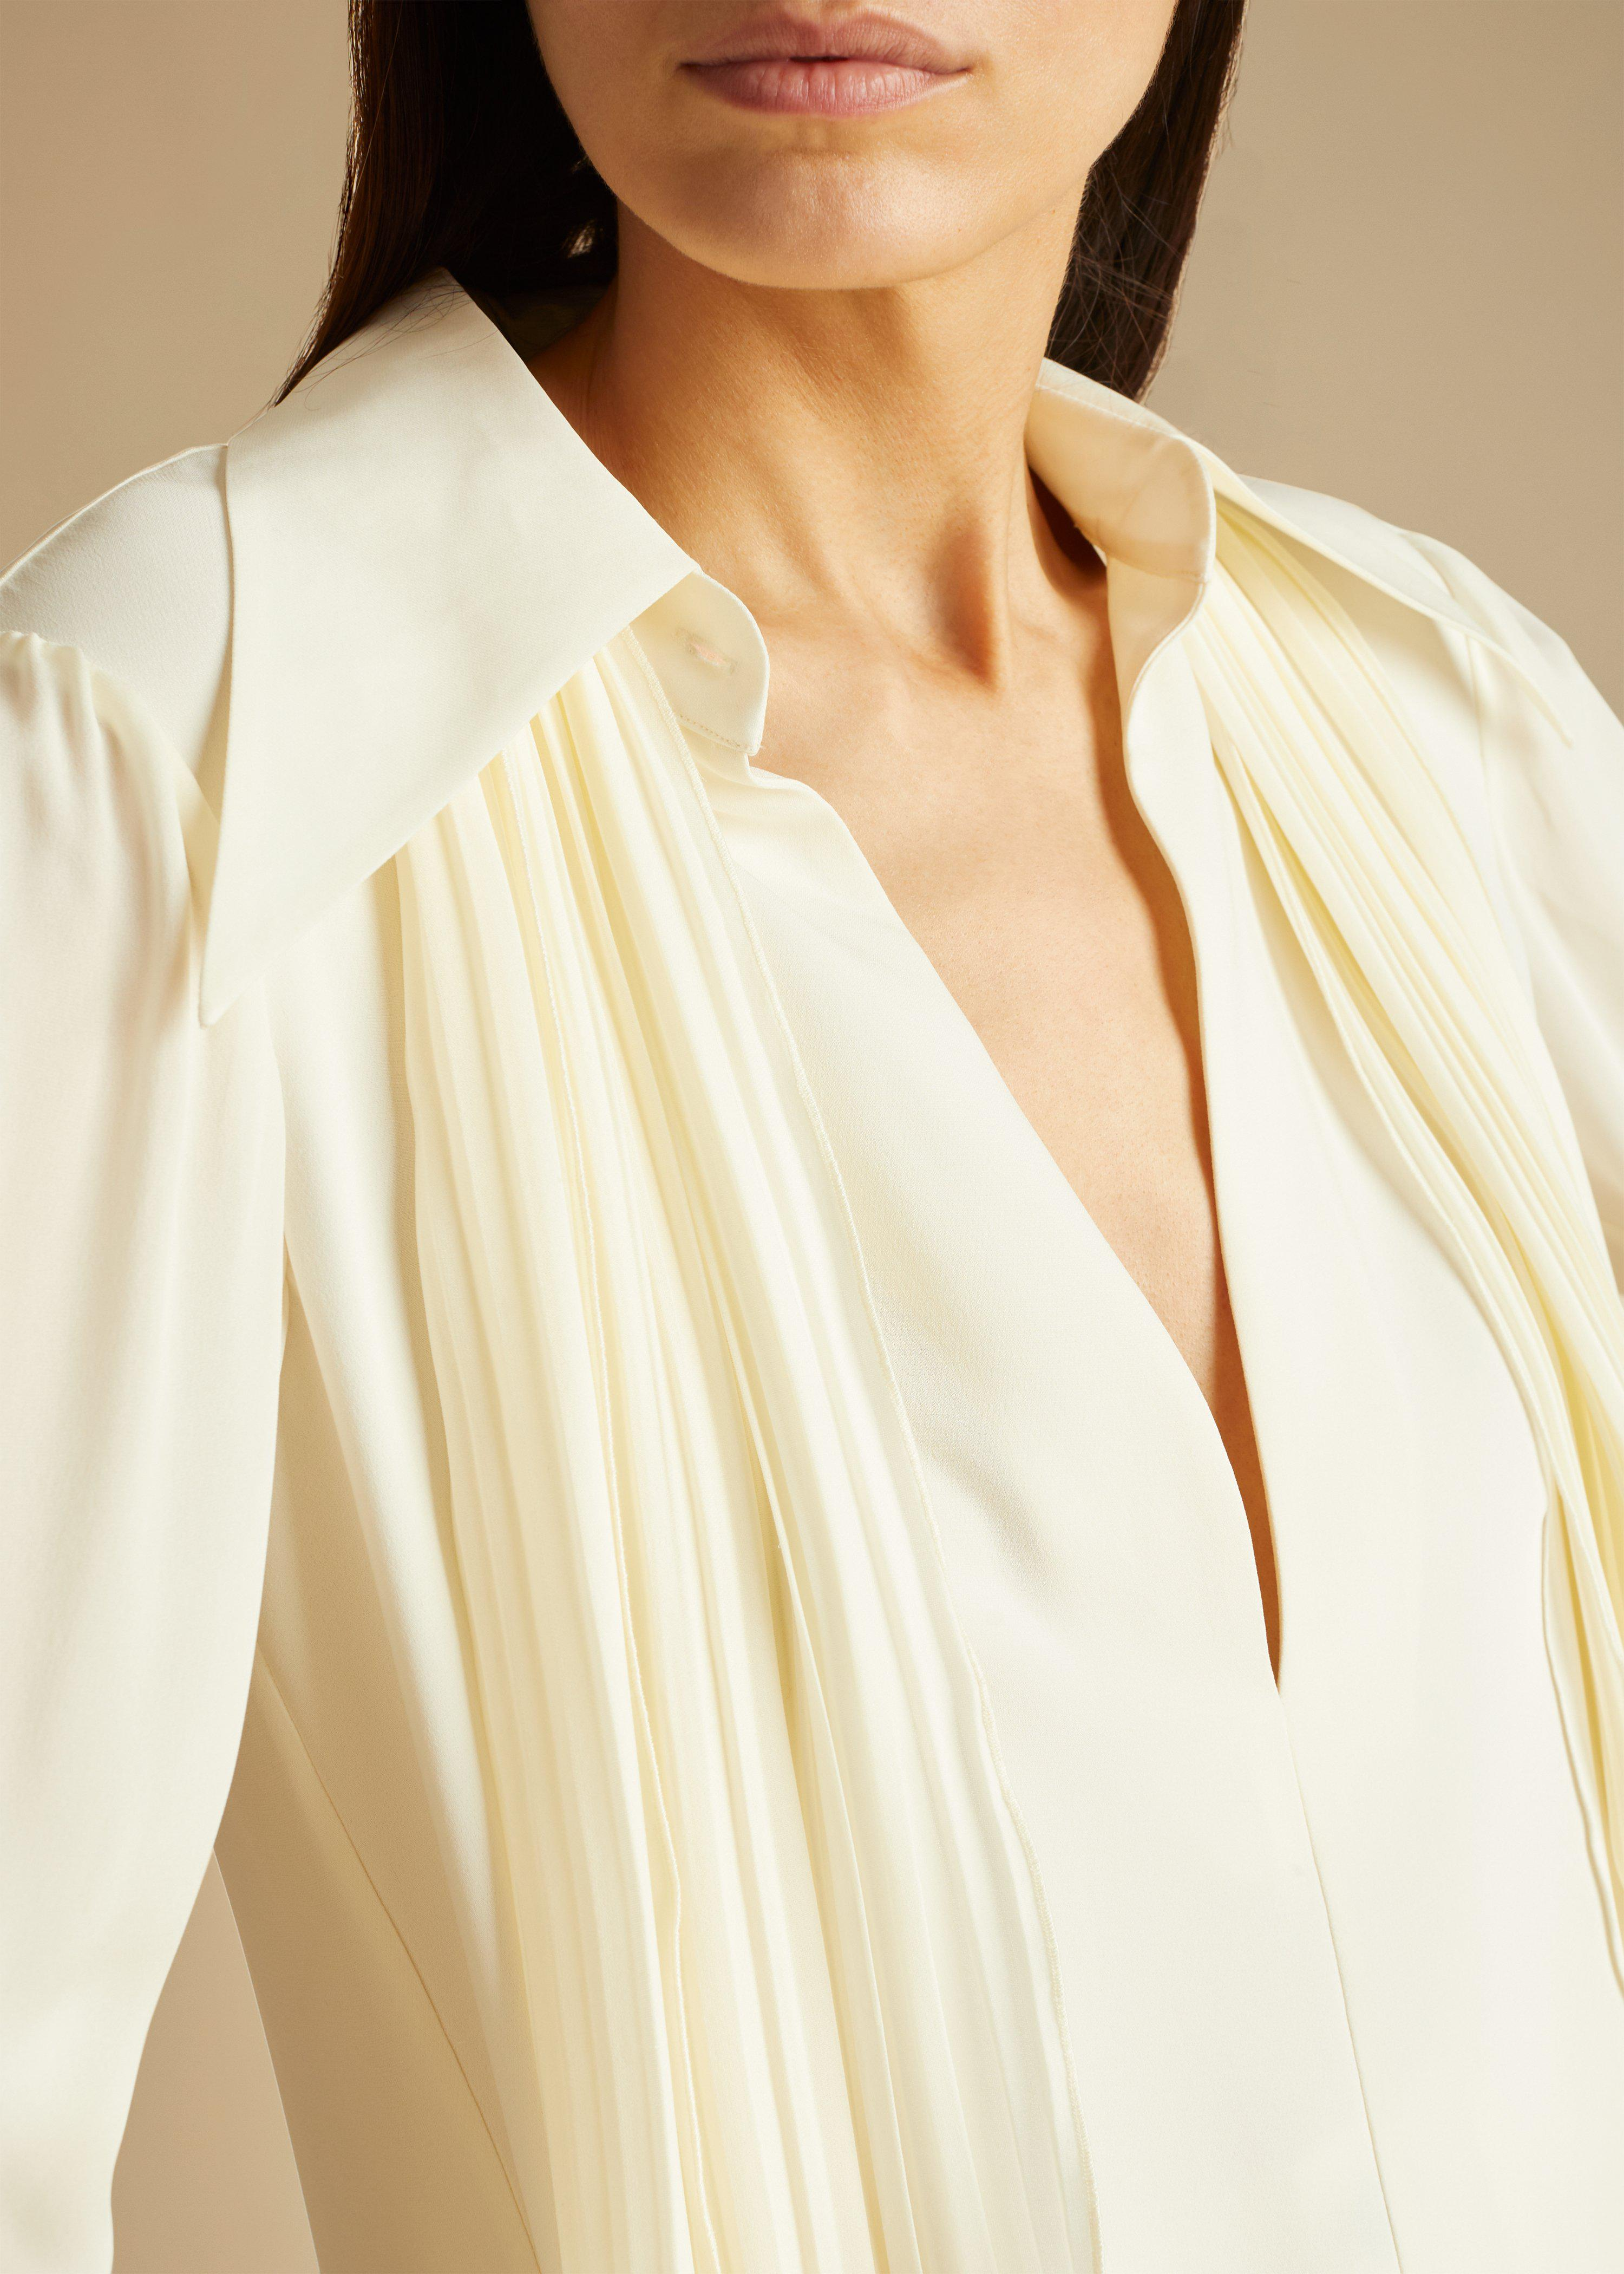 The Nia Top in Ivory 8